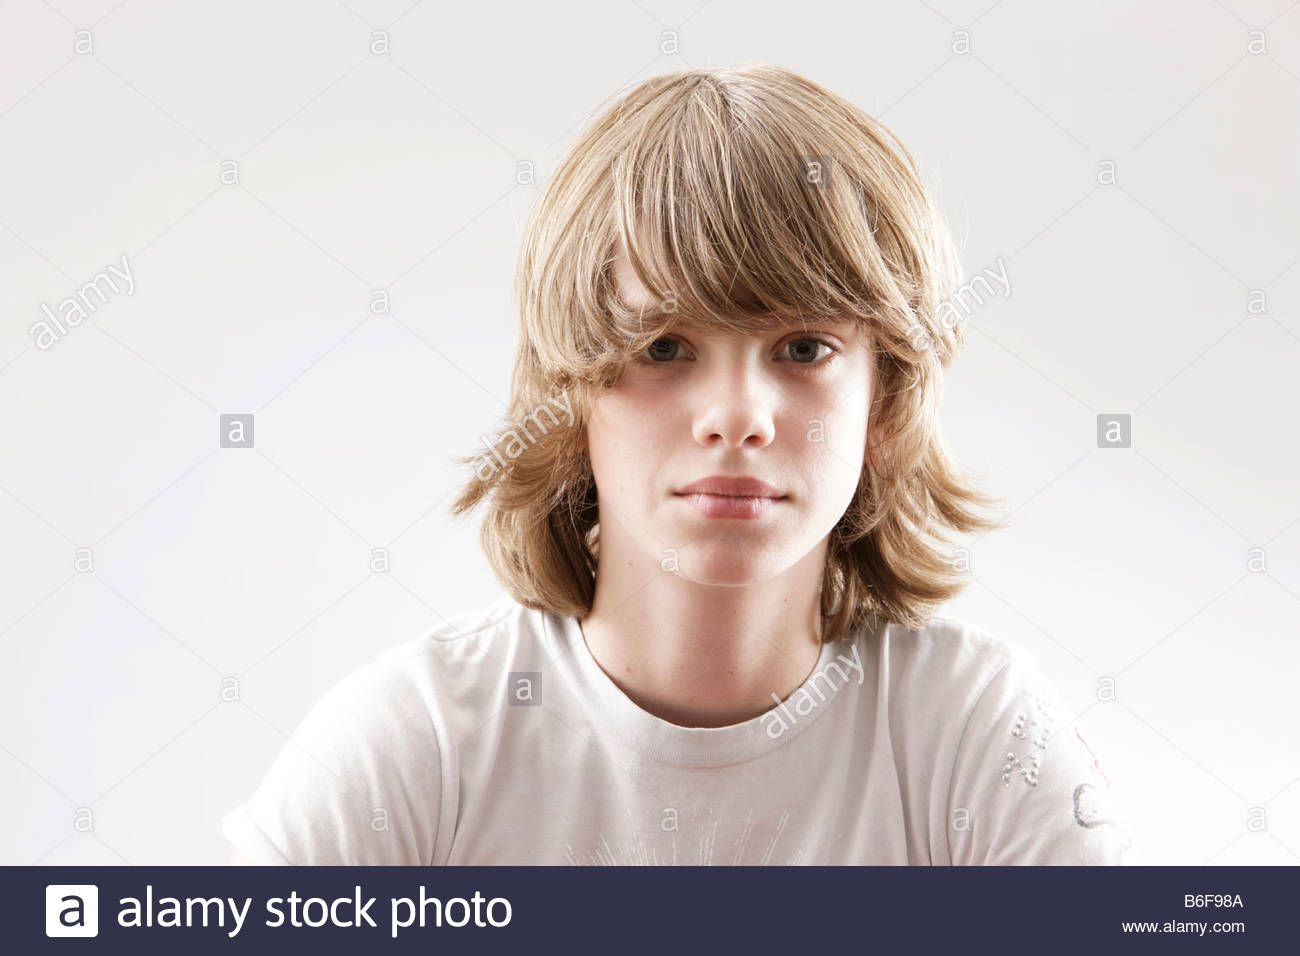 12 Year Old Boy Looking Into The Camera Stock Photo Royalty Free 12 Year Old Boy Old Boys Photo